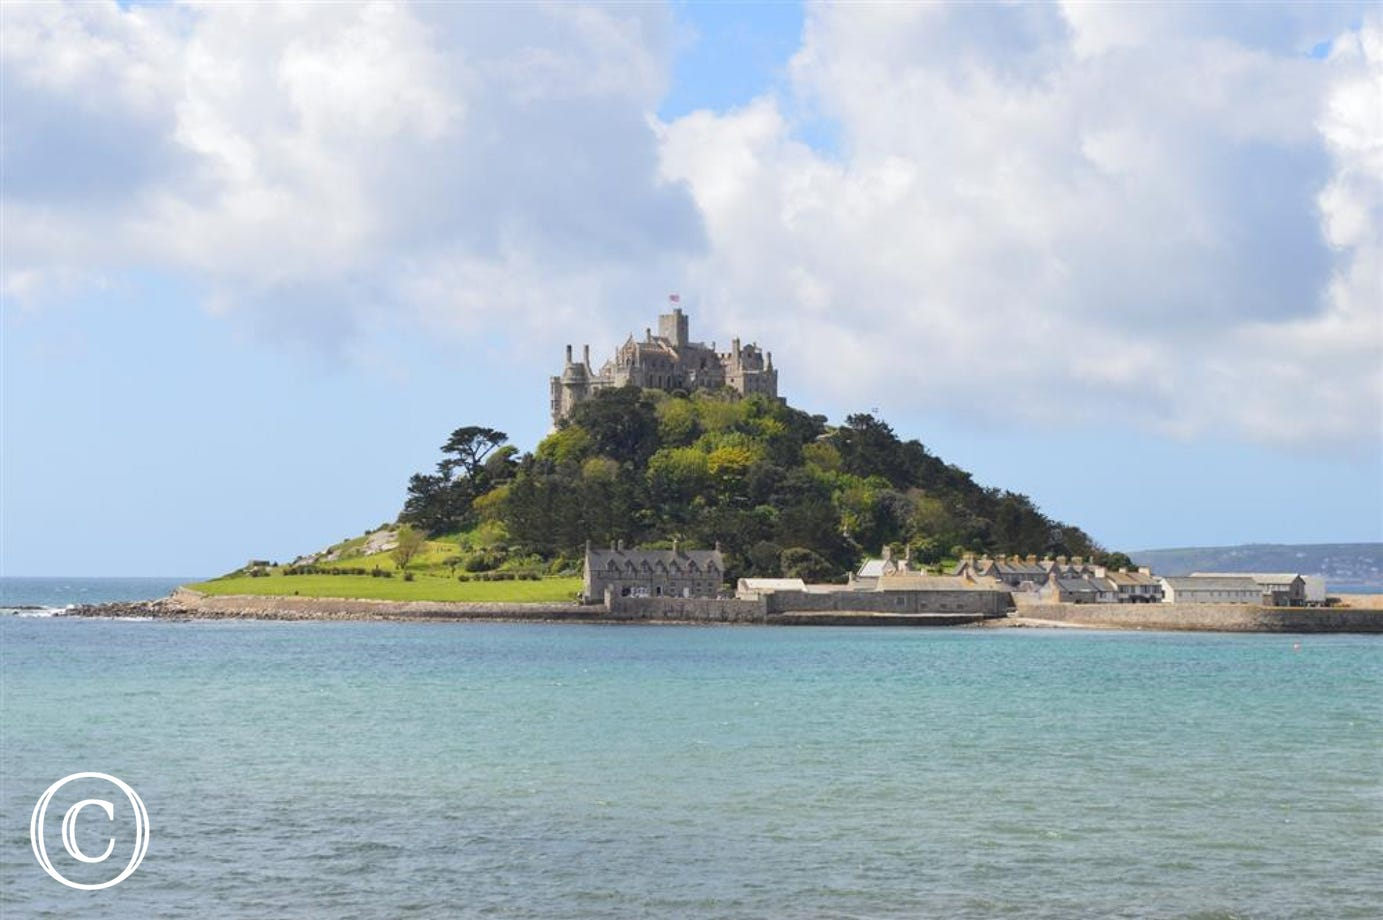 St Michael's Mount is approx 4 miles from Finches - Lovely for a family day out!